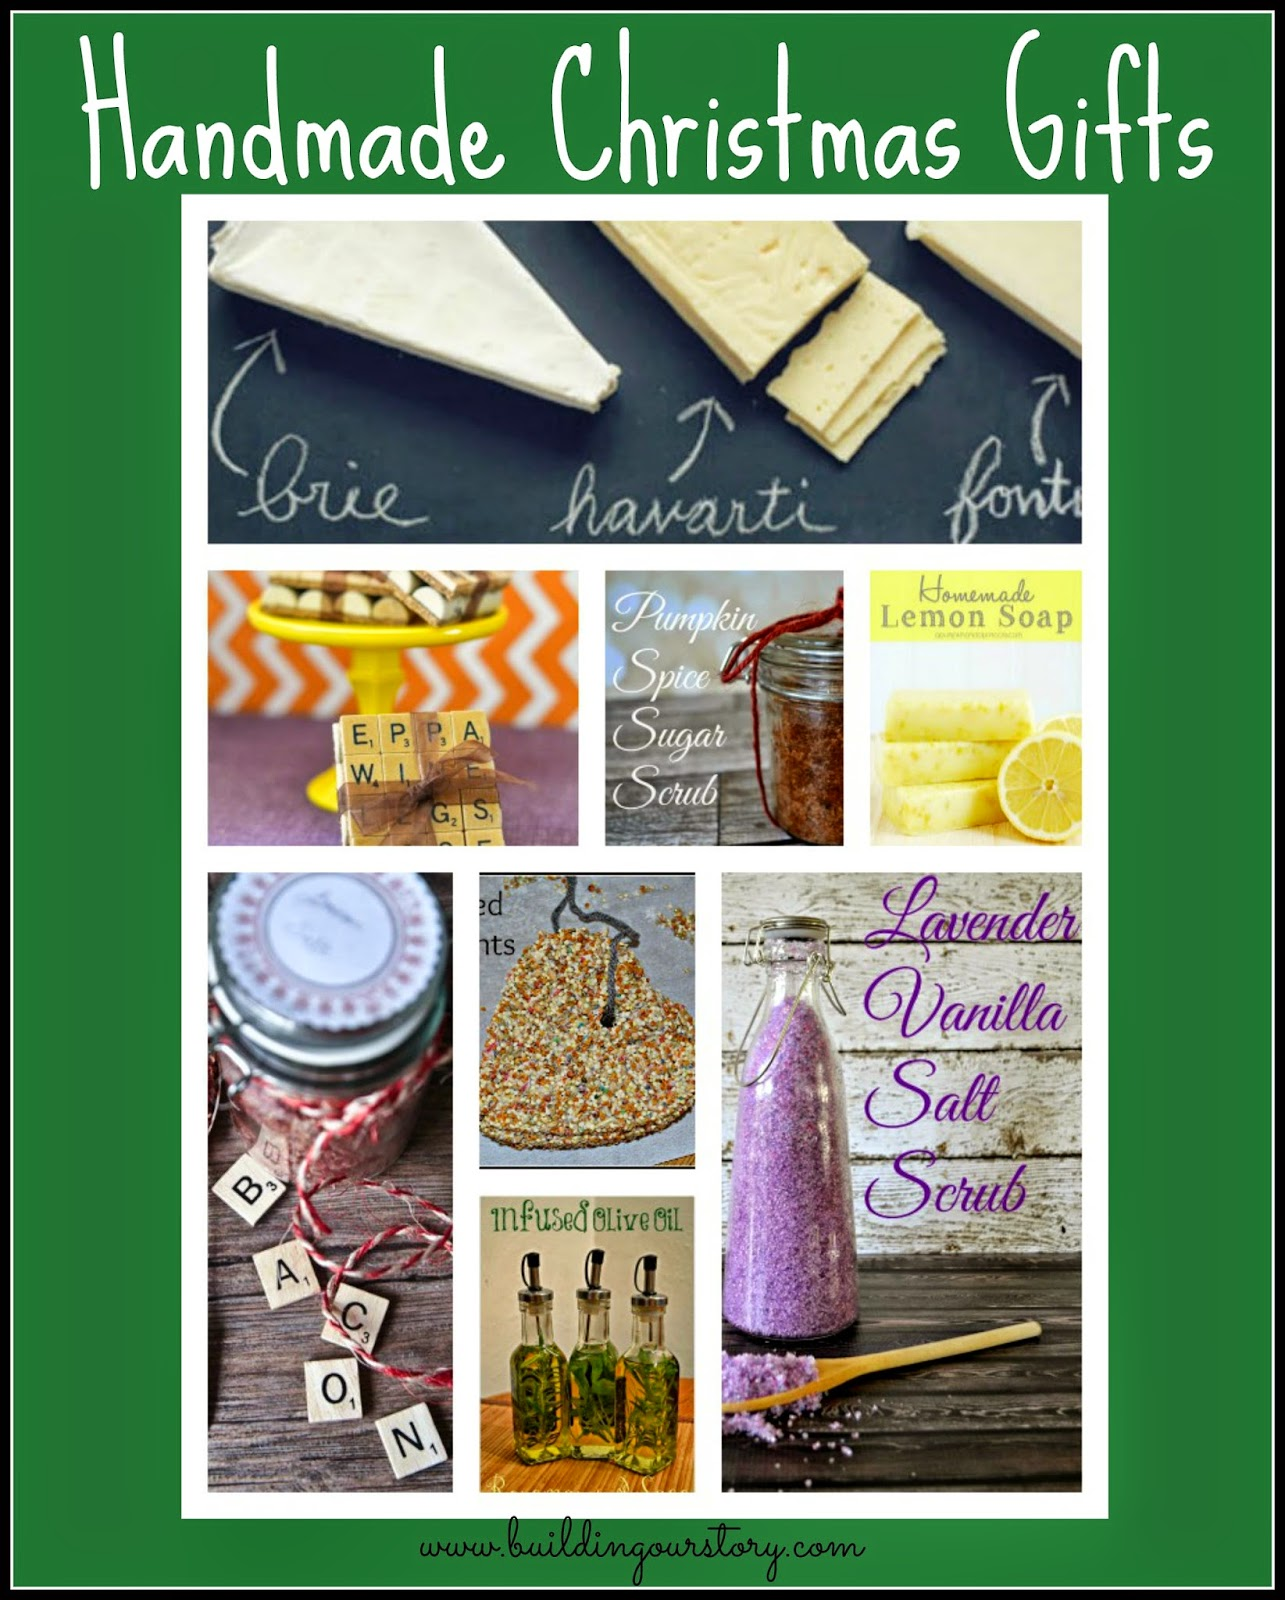 Lovely Handmade Christmas Gifts #DIY. Easy DIY Christmas Gifts. DIY Gifts.  Handmade gifts.  Herb Infused Olive Oil DIY. Rosemary Mary Mint Shaving Cream. Bacon Salt Recipe.  Lavender Vanilla Salt Scrub.  Handmade Soap.  Lemon Soap.  Wine Cork Coasters.  DIY Coasters.  Chalkboard Serving Platter.  Pumpkin Spice Sugar Scrub recipe.  Bird Seed Ornaments.